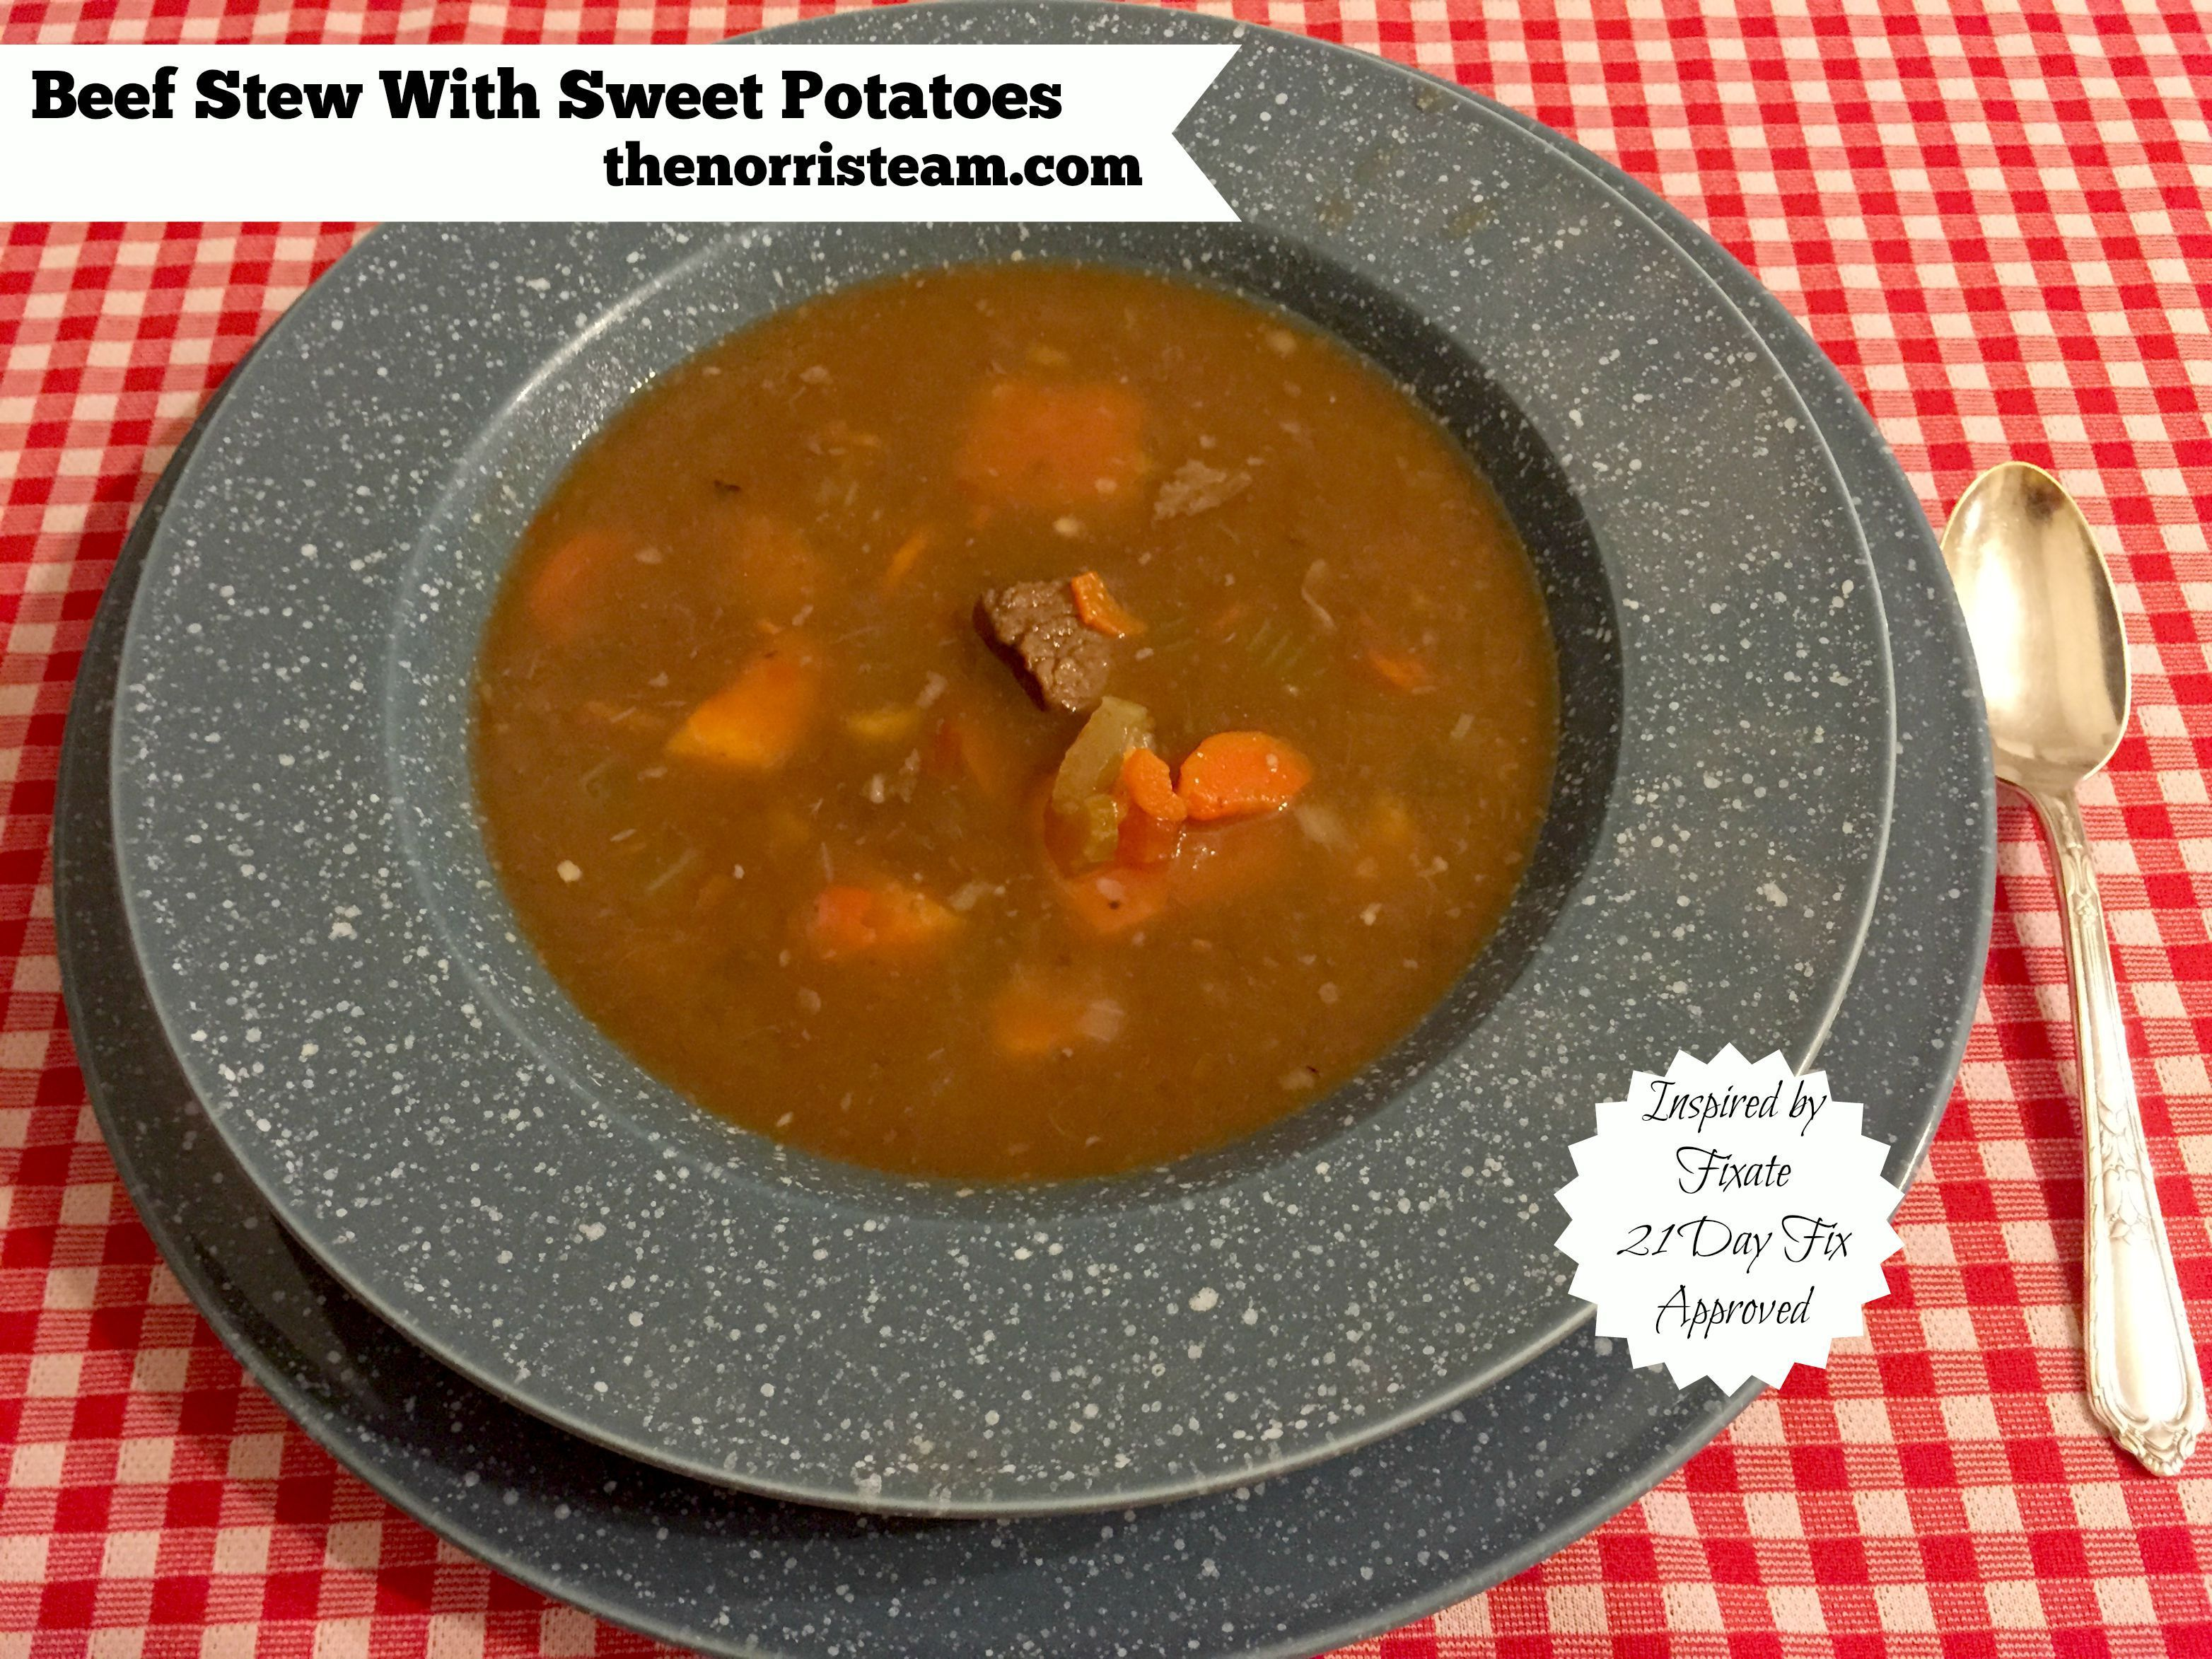 21 Day Fixate Beef Stew